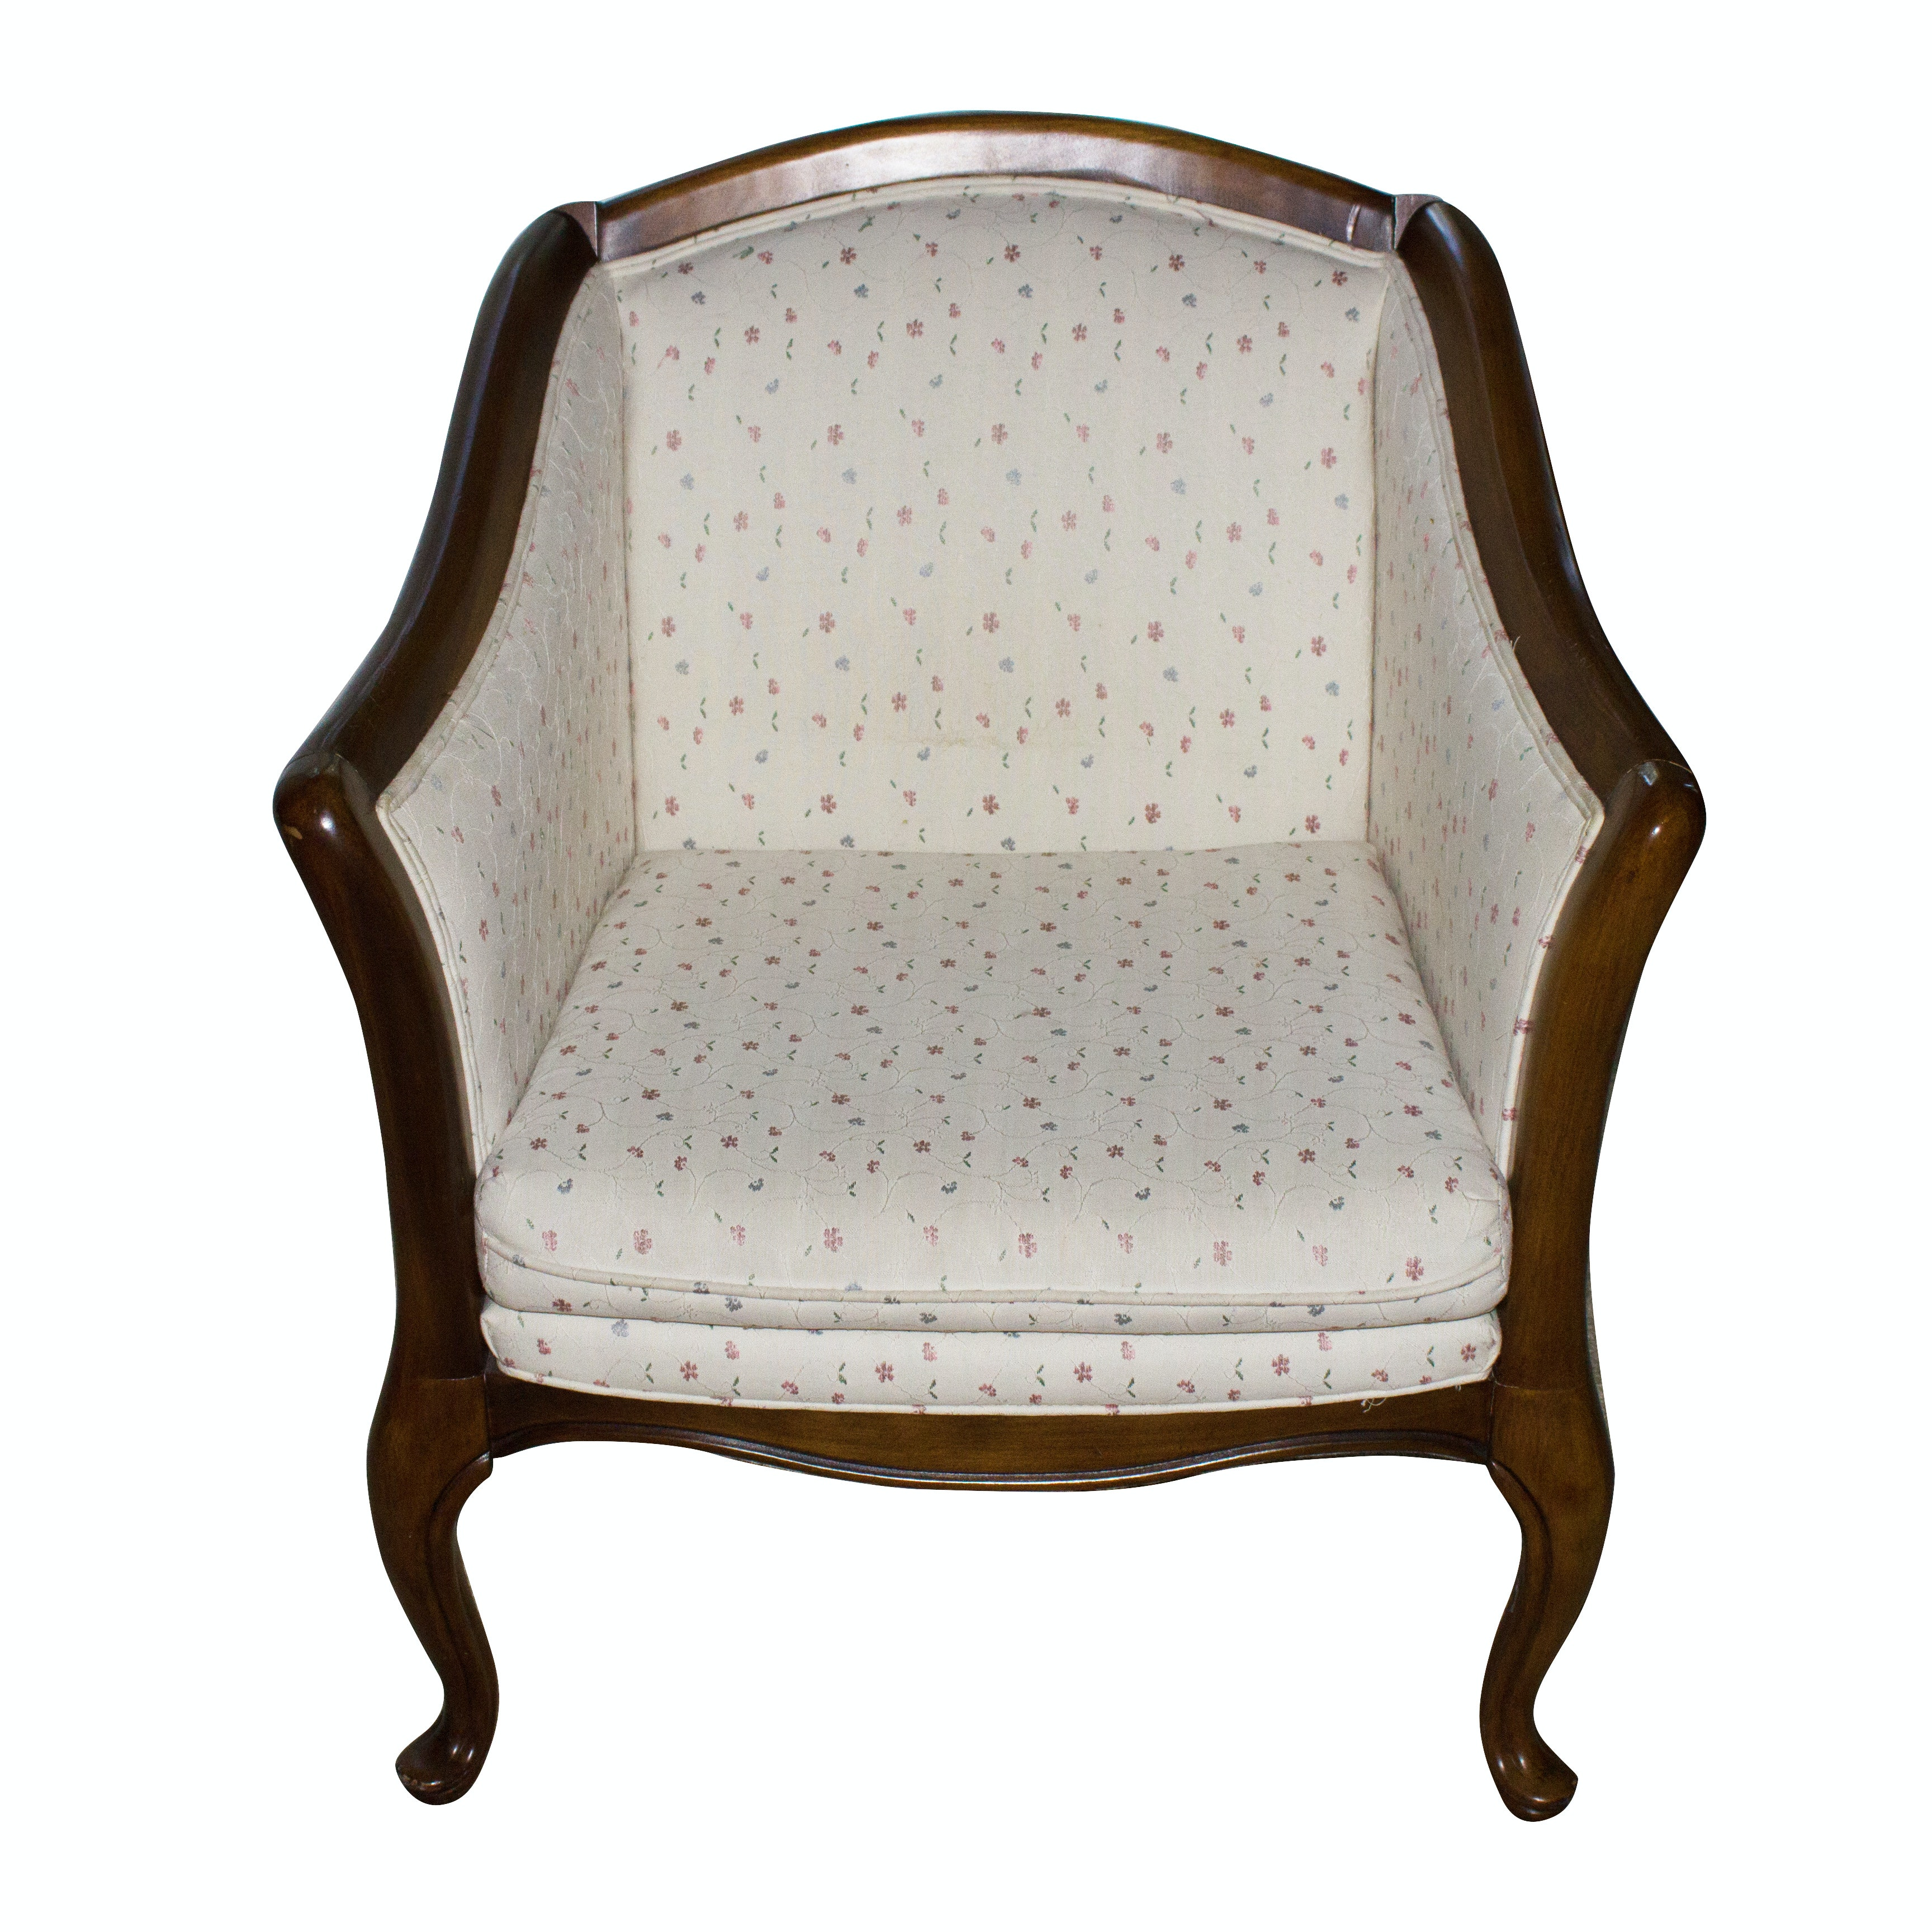 Vintage Upholstered Chair with Exposed Frame